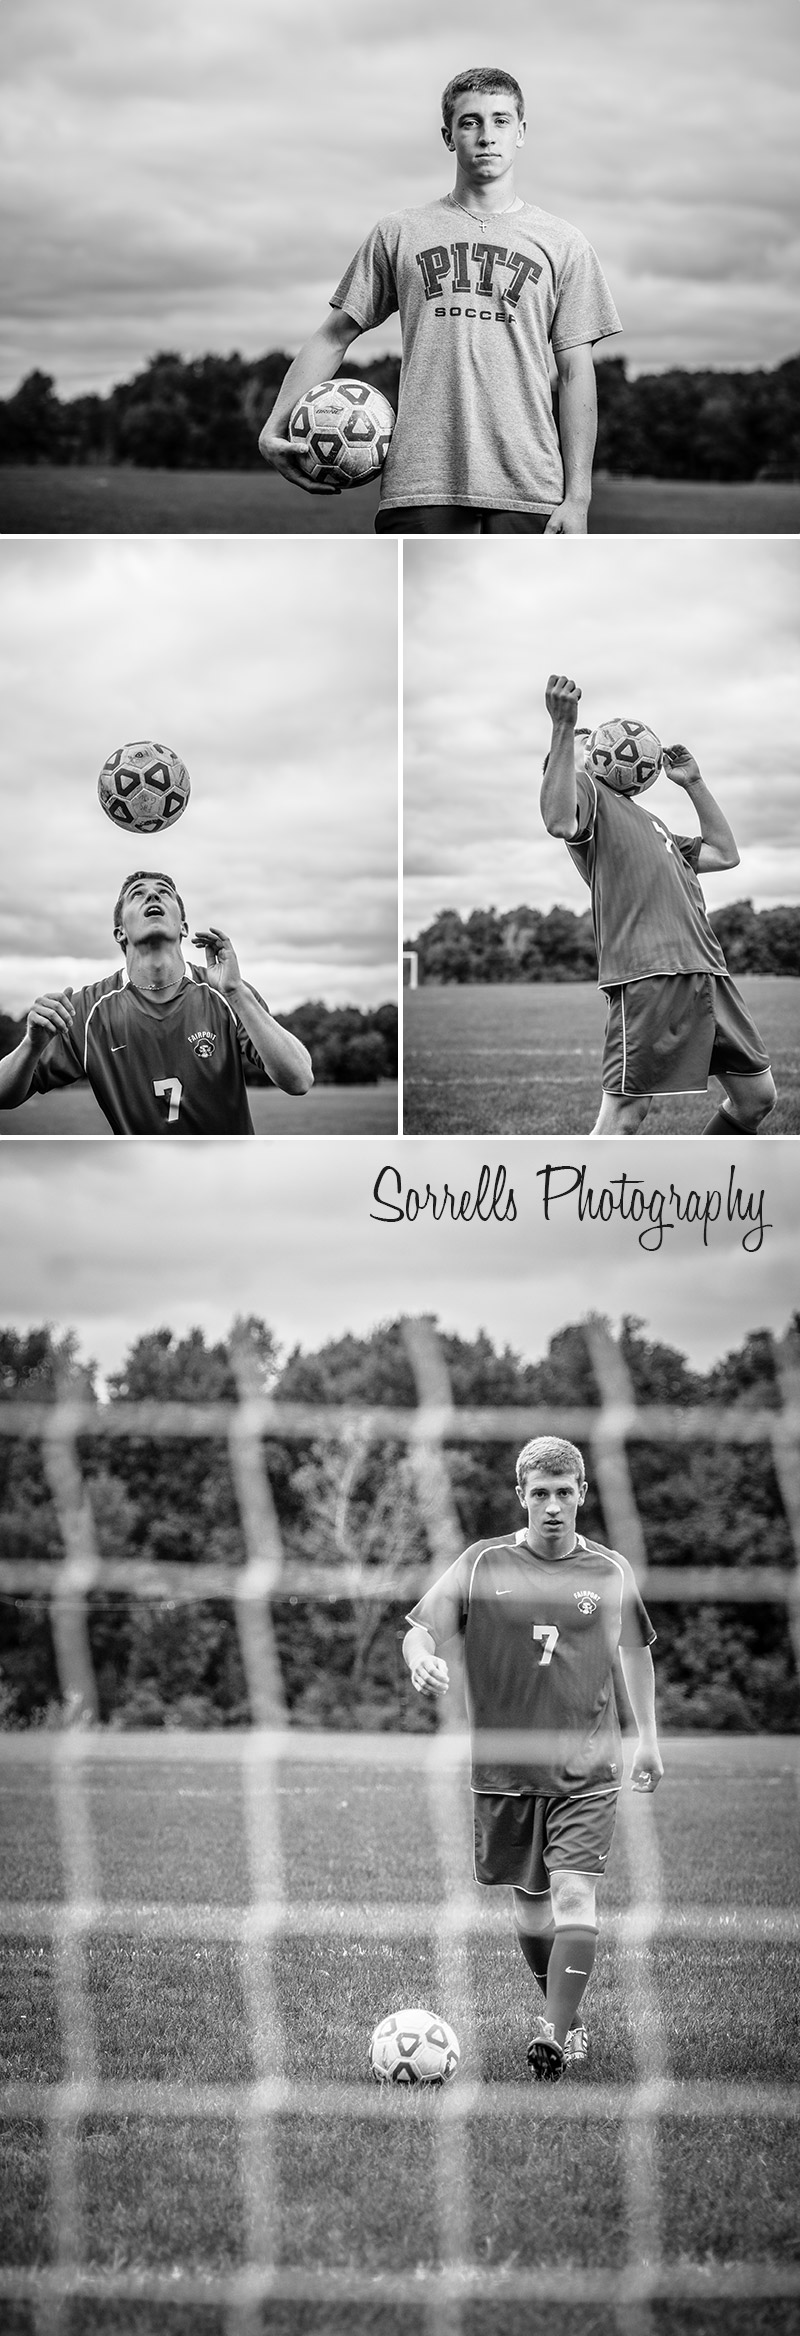 Senior Portrait by Sorrells Photography